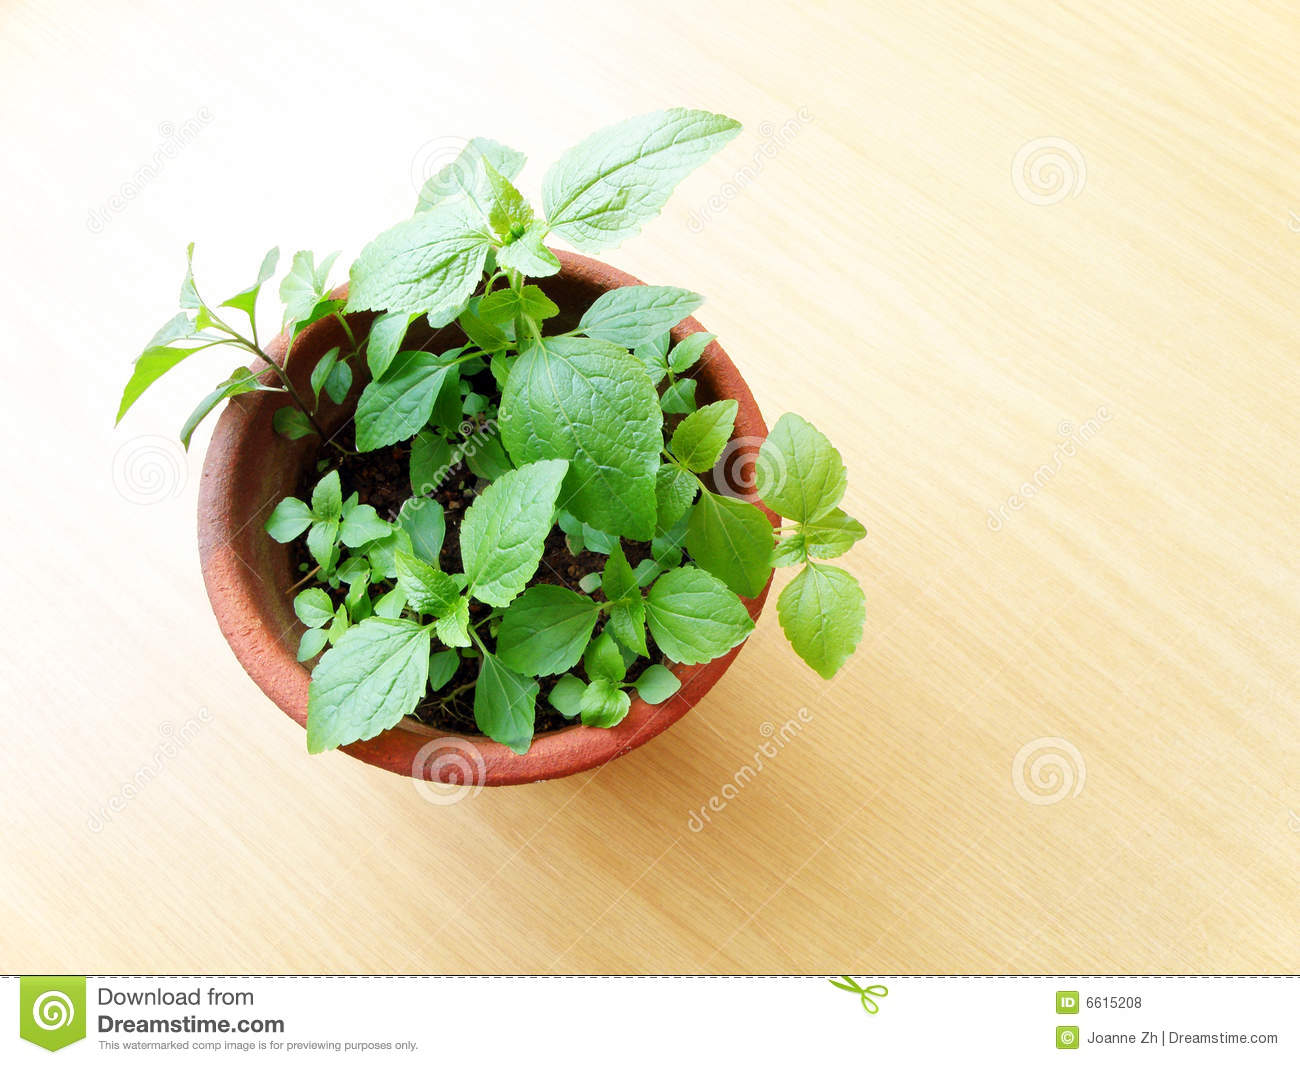 https://i0.wp.com/thumbs.dreamstime.com/z/potted-green-plant-wooden-table-6615208.jpg